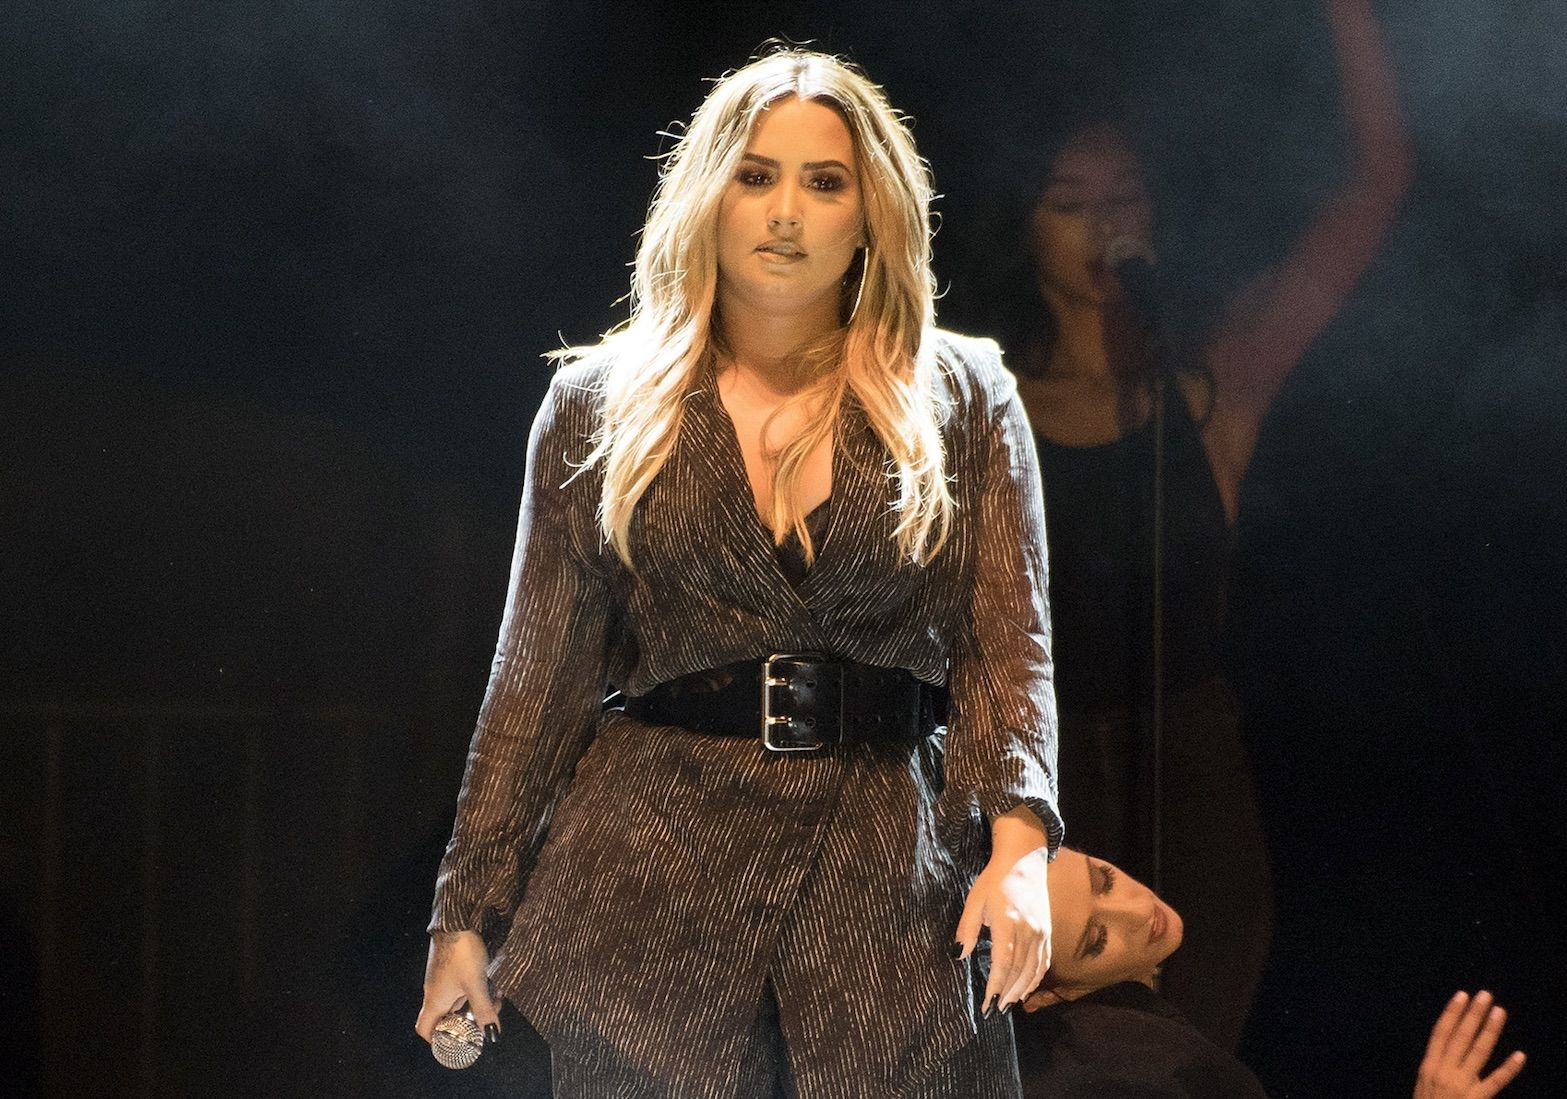 Why Demi Lovato suddenly deleted her Twitter